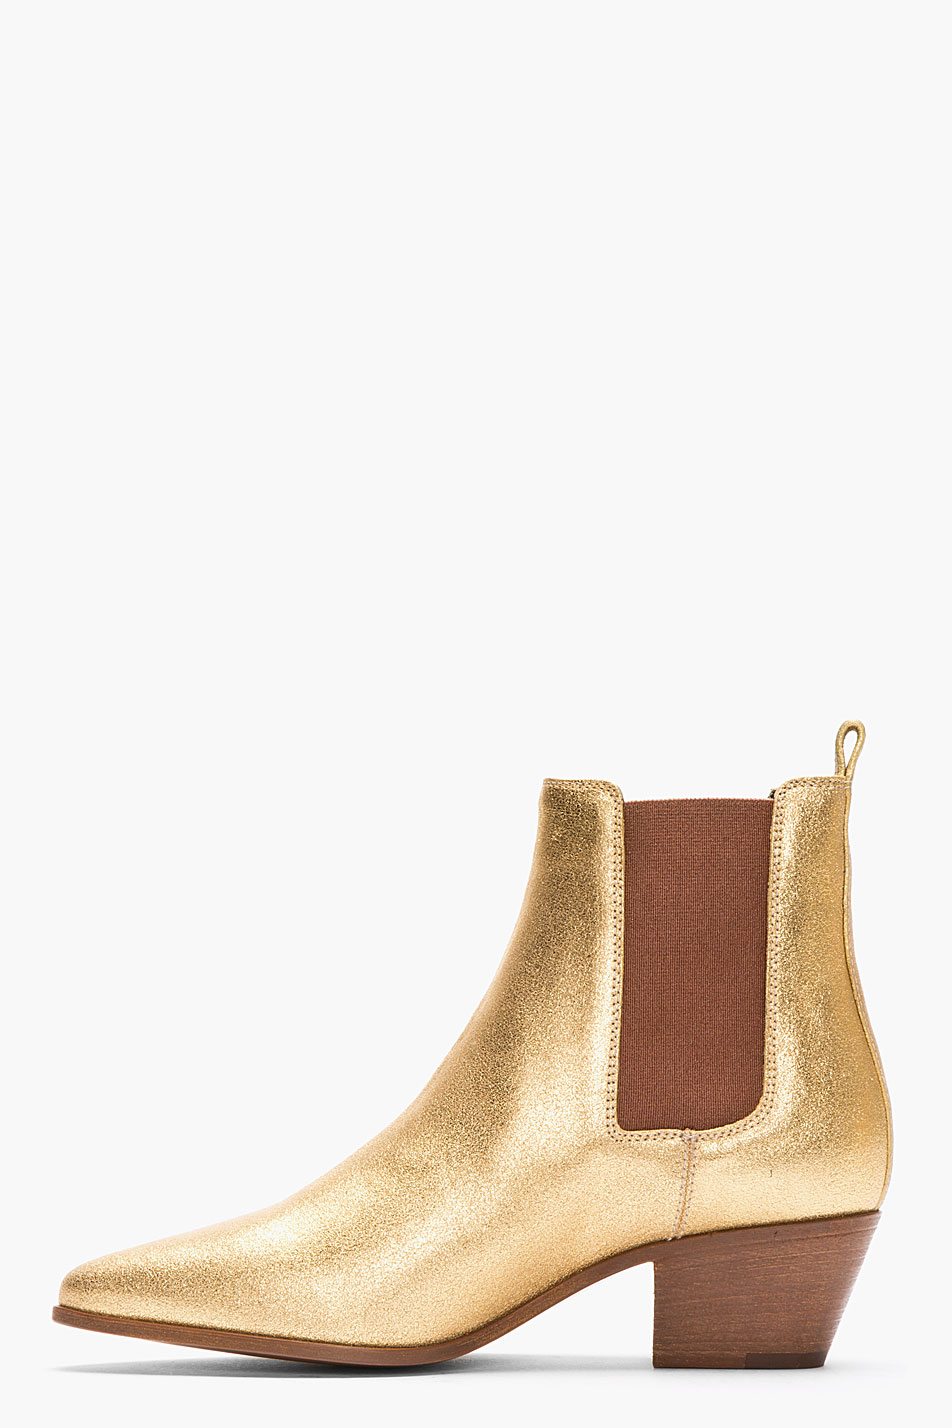 Lyst - Saint Laurent Metallic Gold Leather Chelsea Ankle Boots in Metallic 4c7033be3932